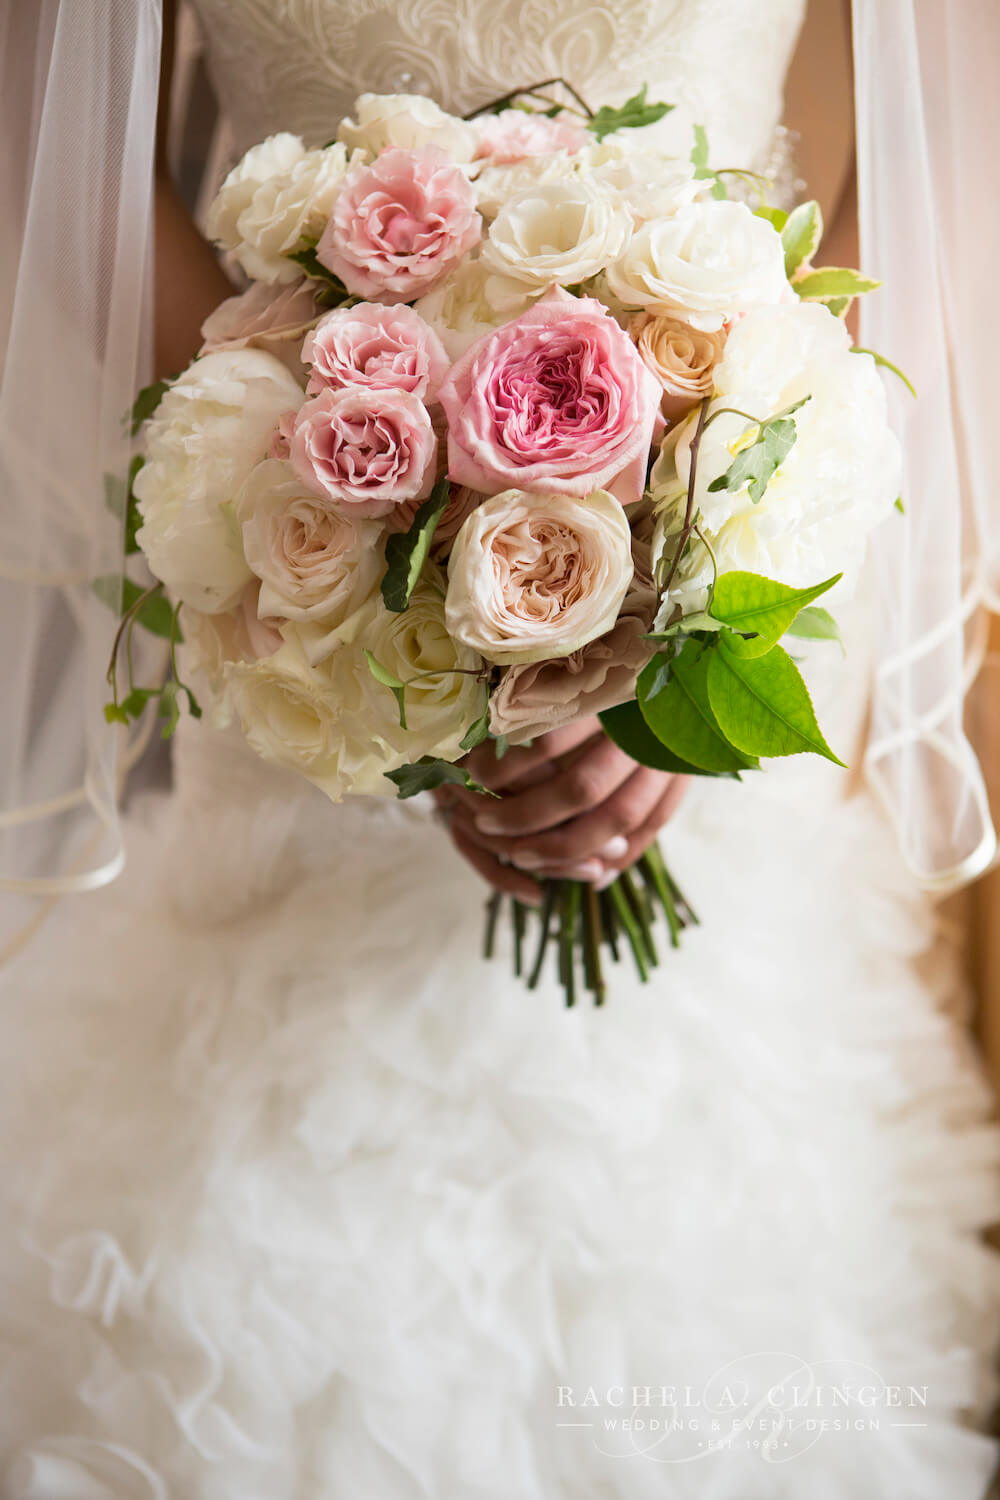 Roses In Garden: Wedding-bouquets-garden-roses